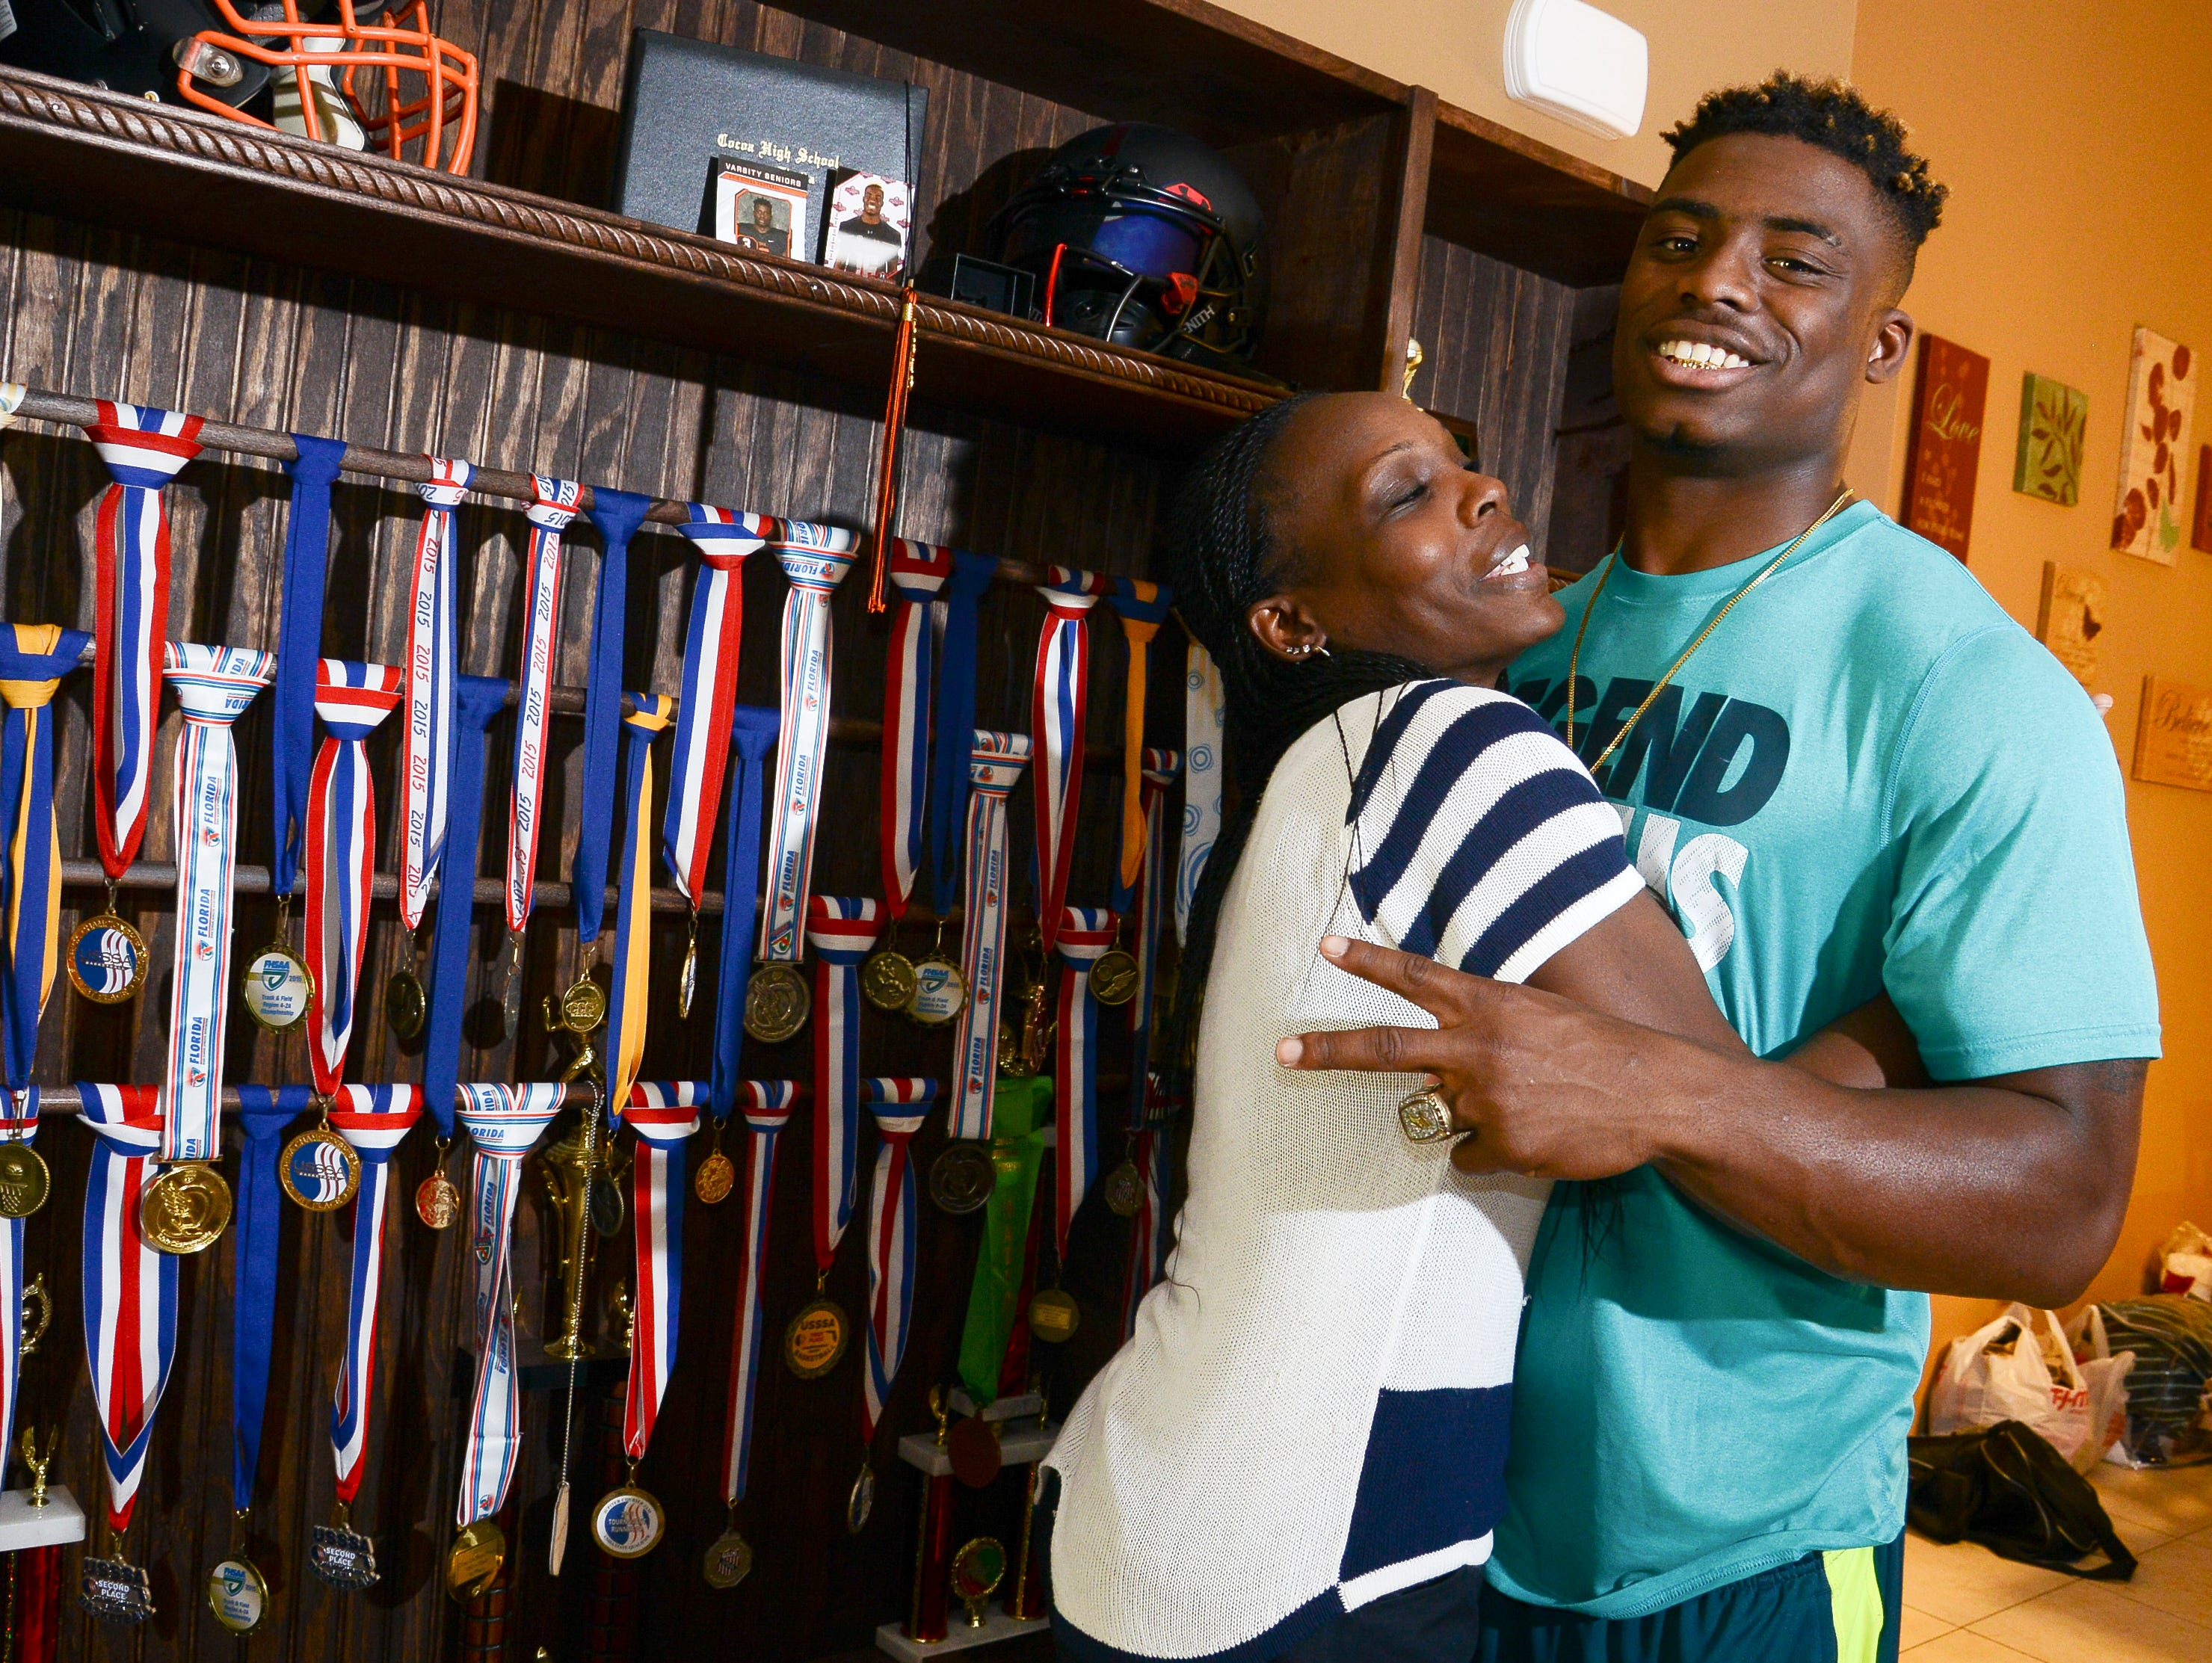 Chauncey Gardner stands with his mother Delatron Johnson in their Cocoa home.